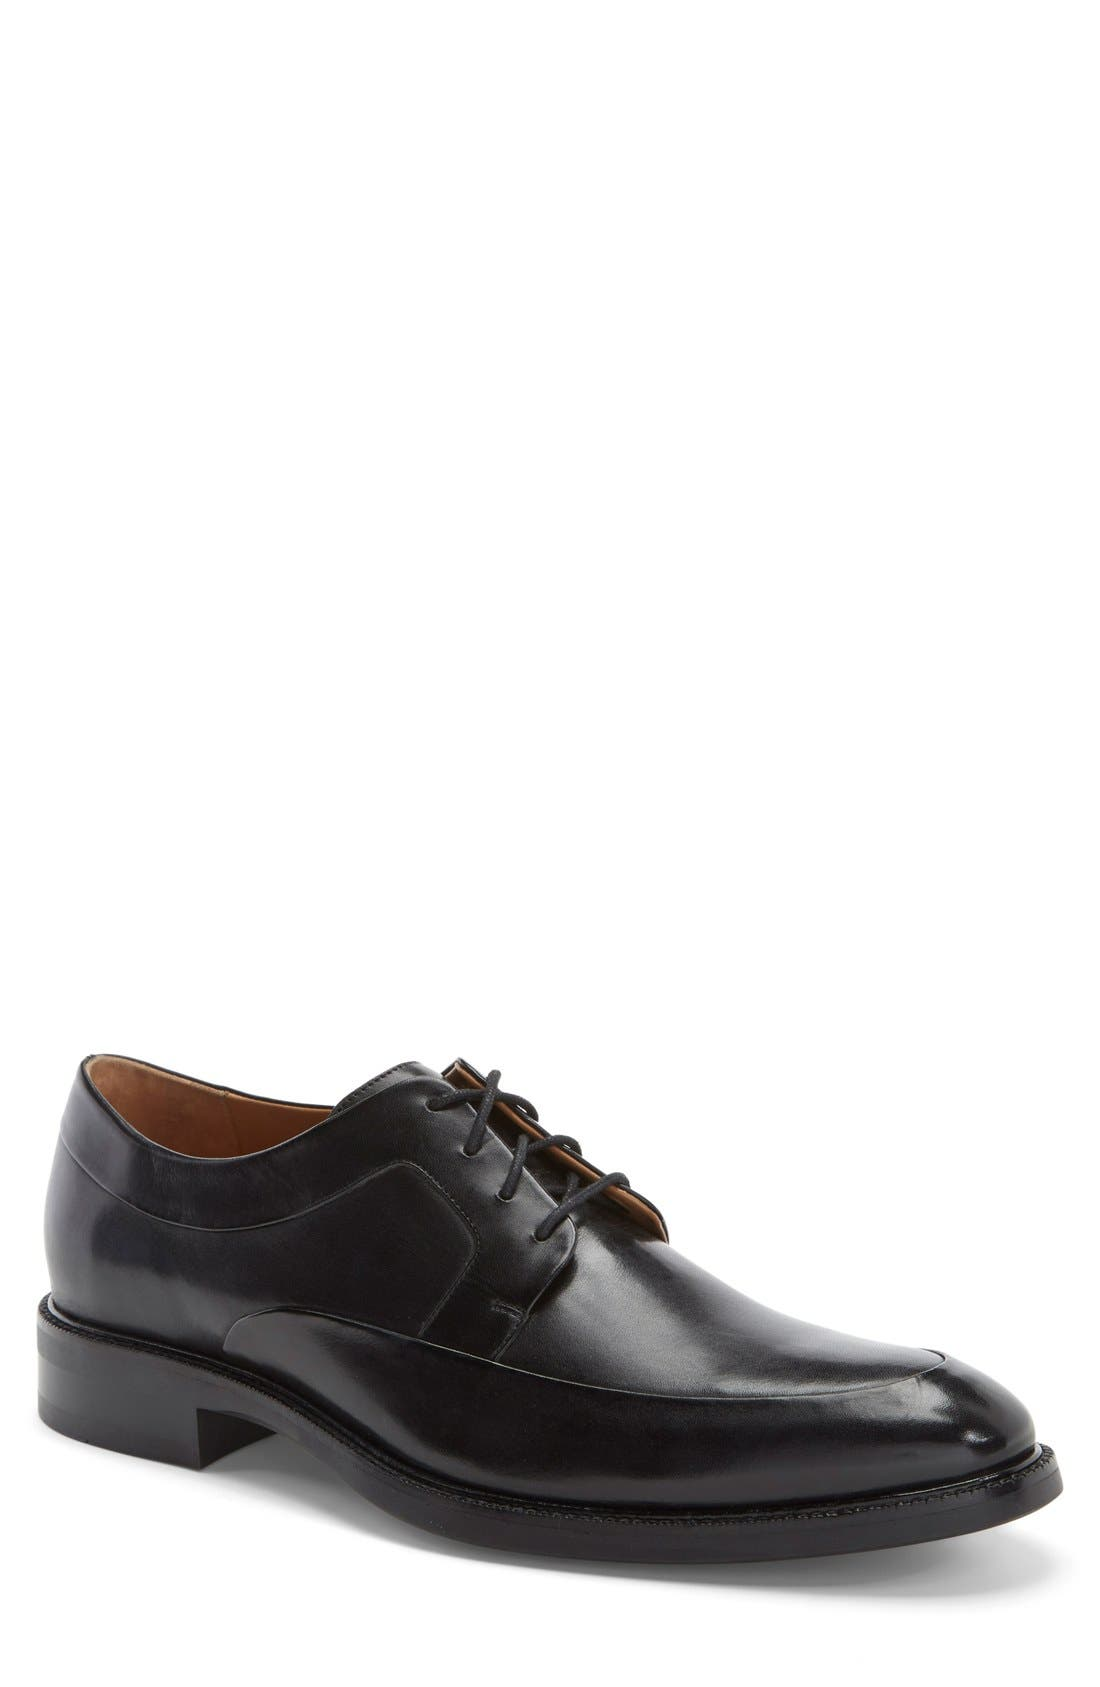 COLE HAAN 'Warren' Apron Toe Derby, Main, color, BLACK LEATHER